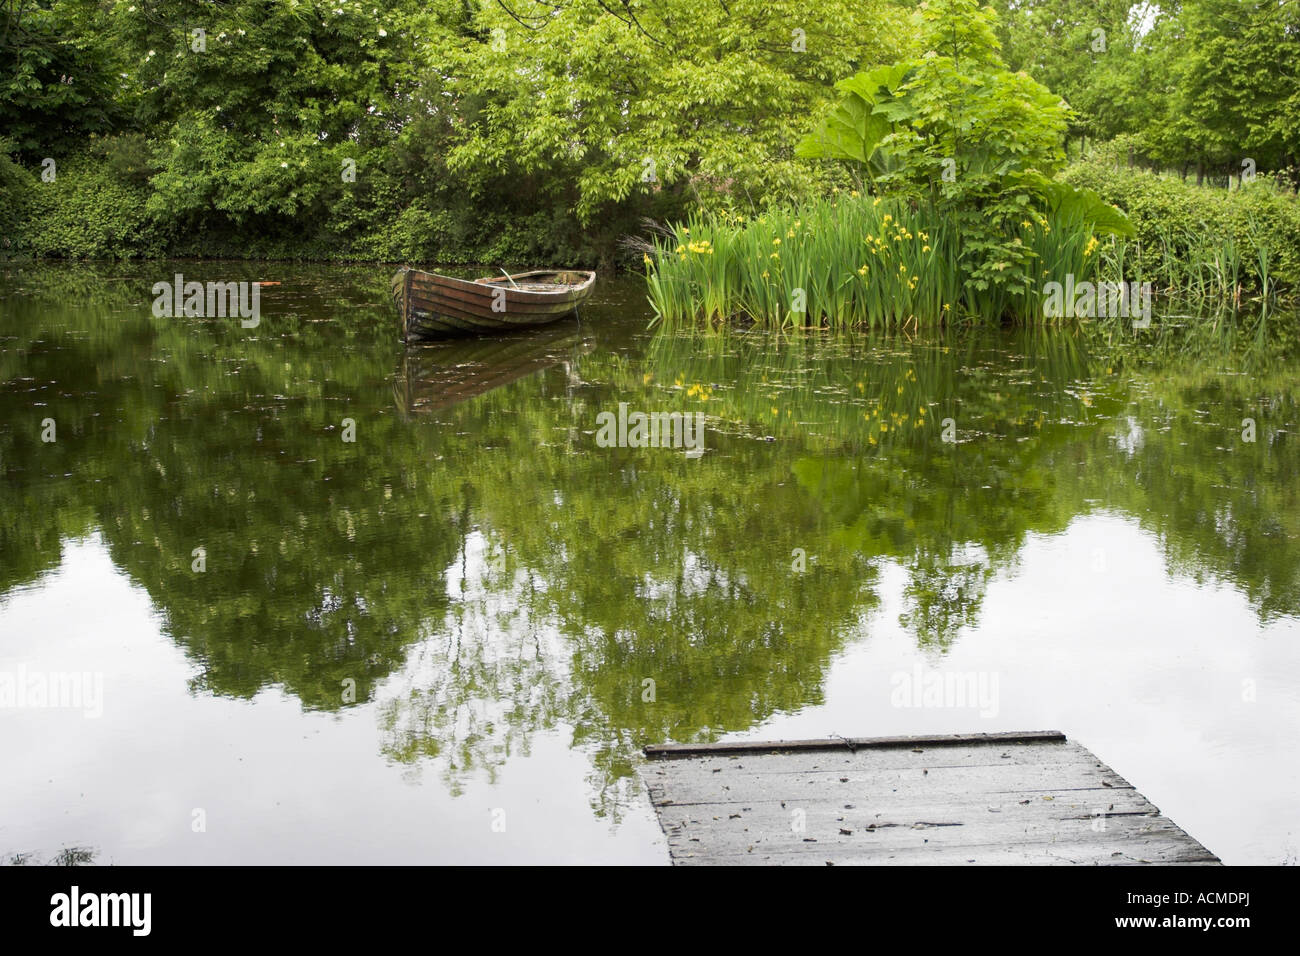 Rowing boat in a pond at Bunratty Folk Park Co Clare Ireland Stock Photo